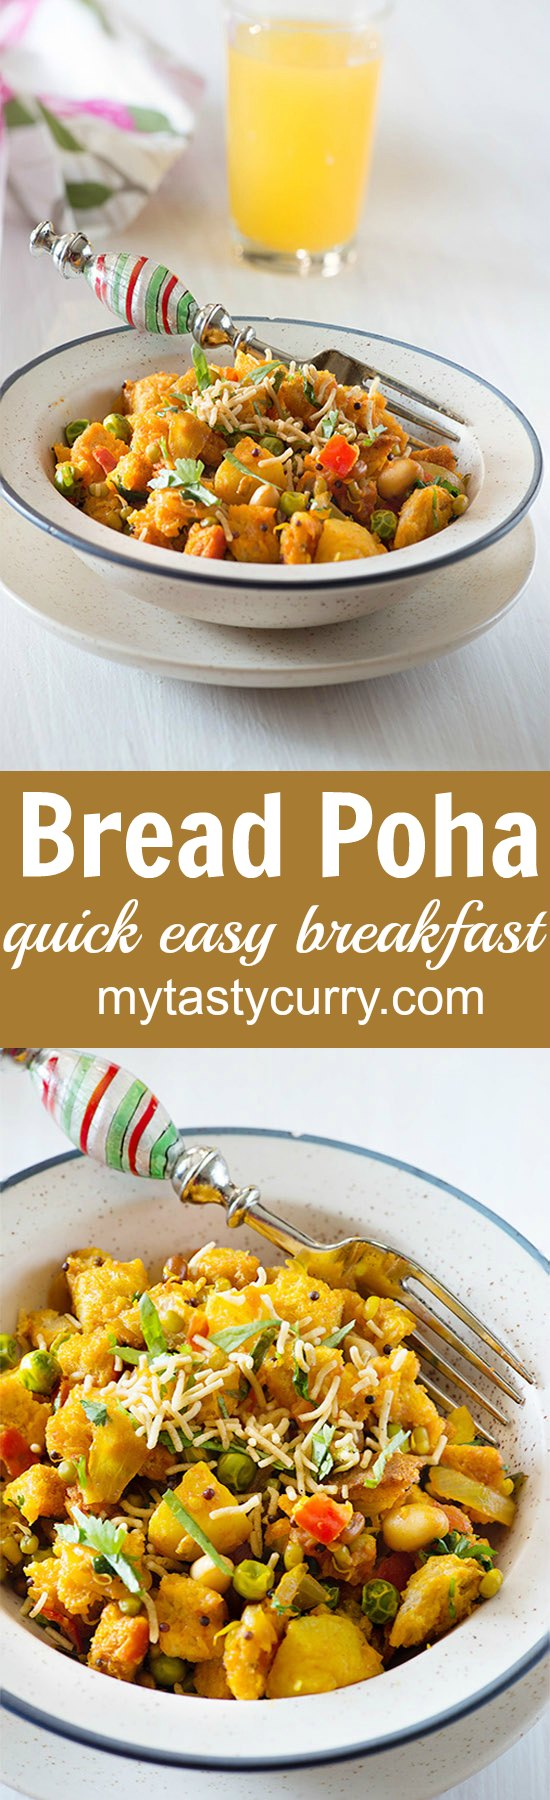 Bread poha is simple Indian breakfast that is made by cooking chunks of leftover bread in spicy tomato masala. 10 Minutes is all that is required to make tasty and Easy Vegetarian Indian Breakfast.